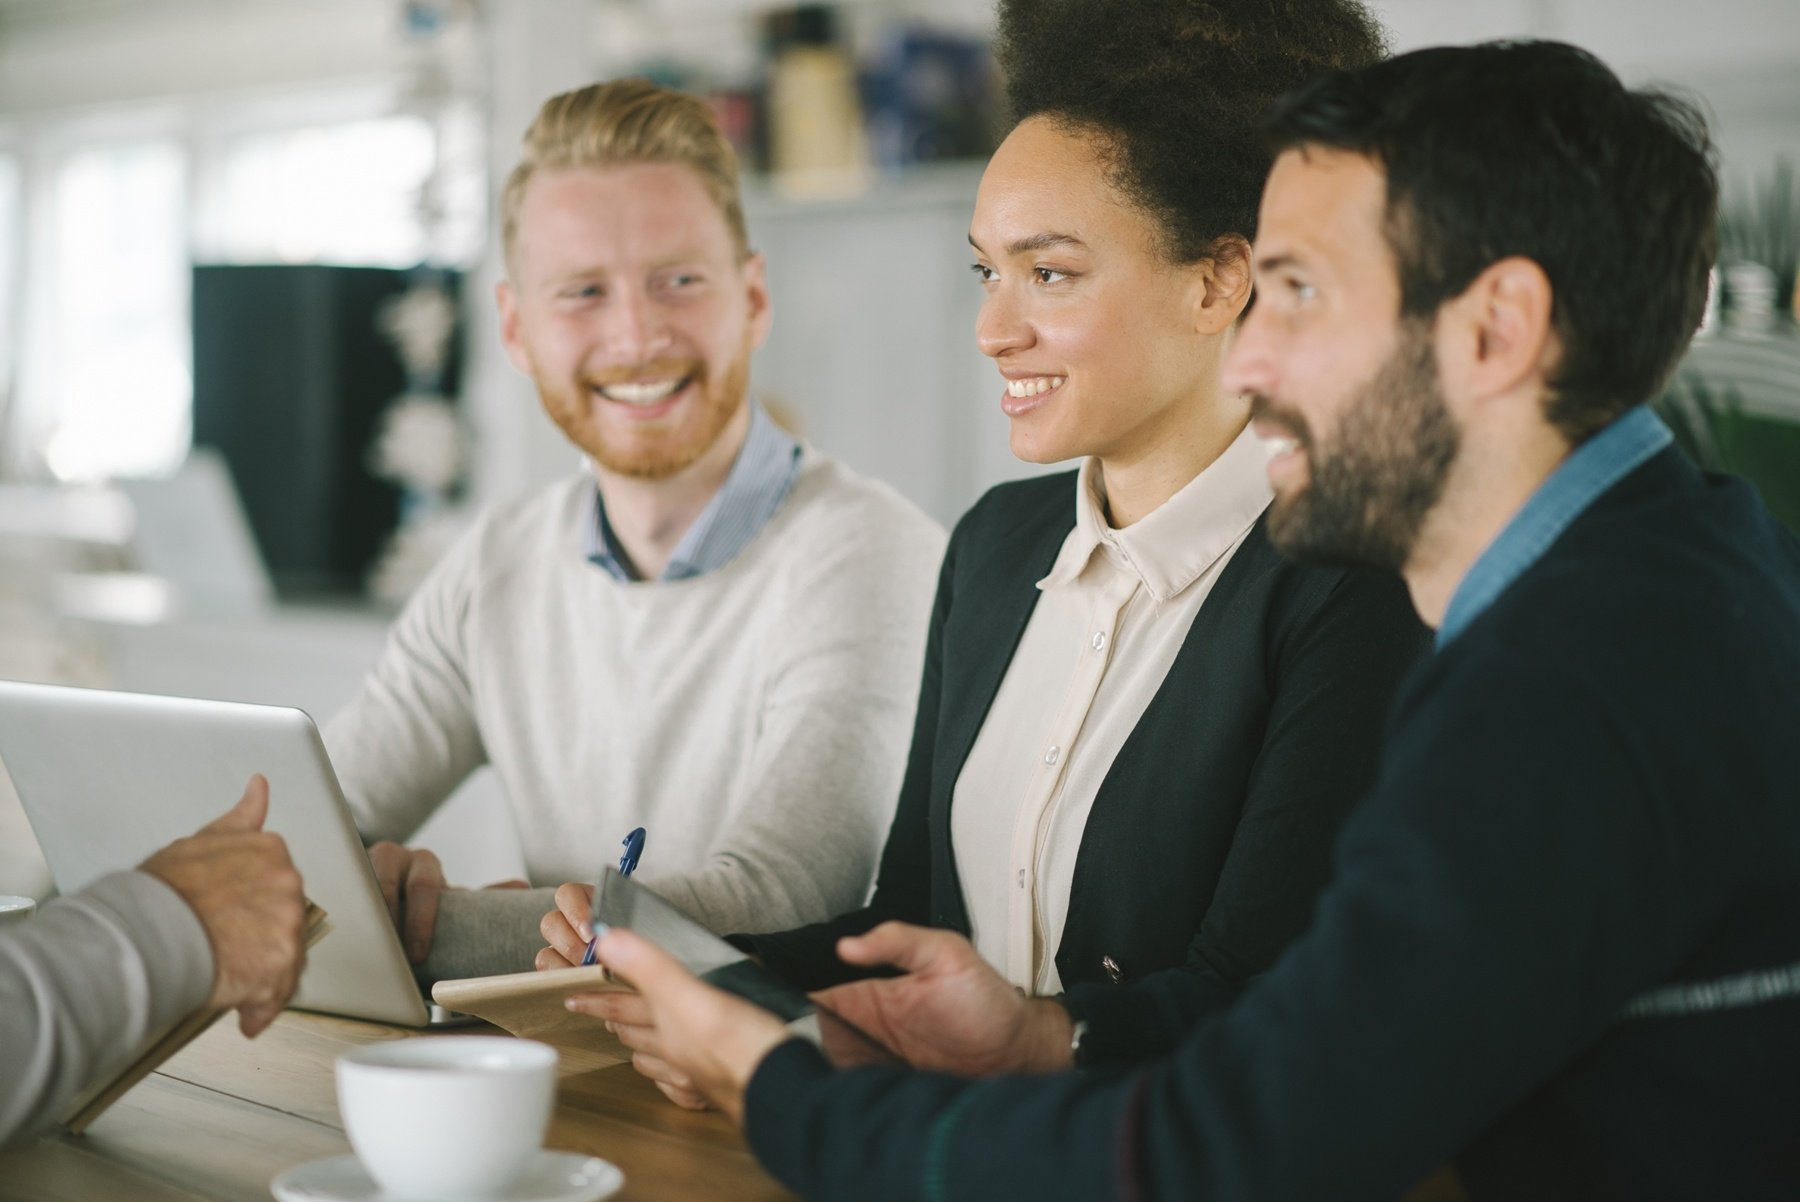 Employee benefits can help to improve workforce morale, limit staff turnover and attract new staff.